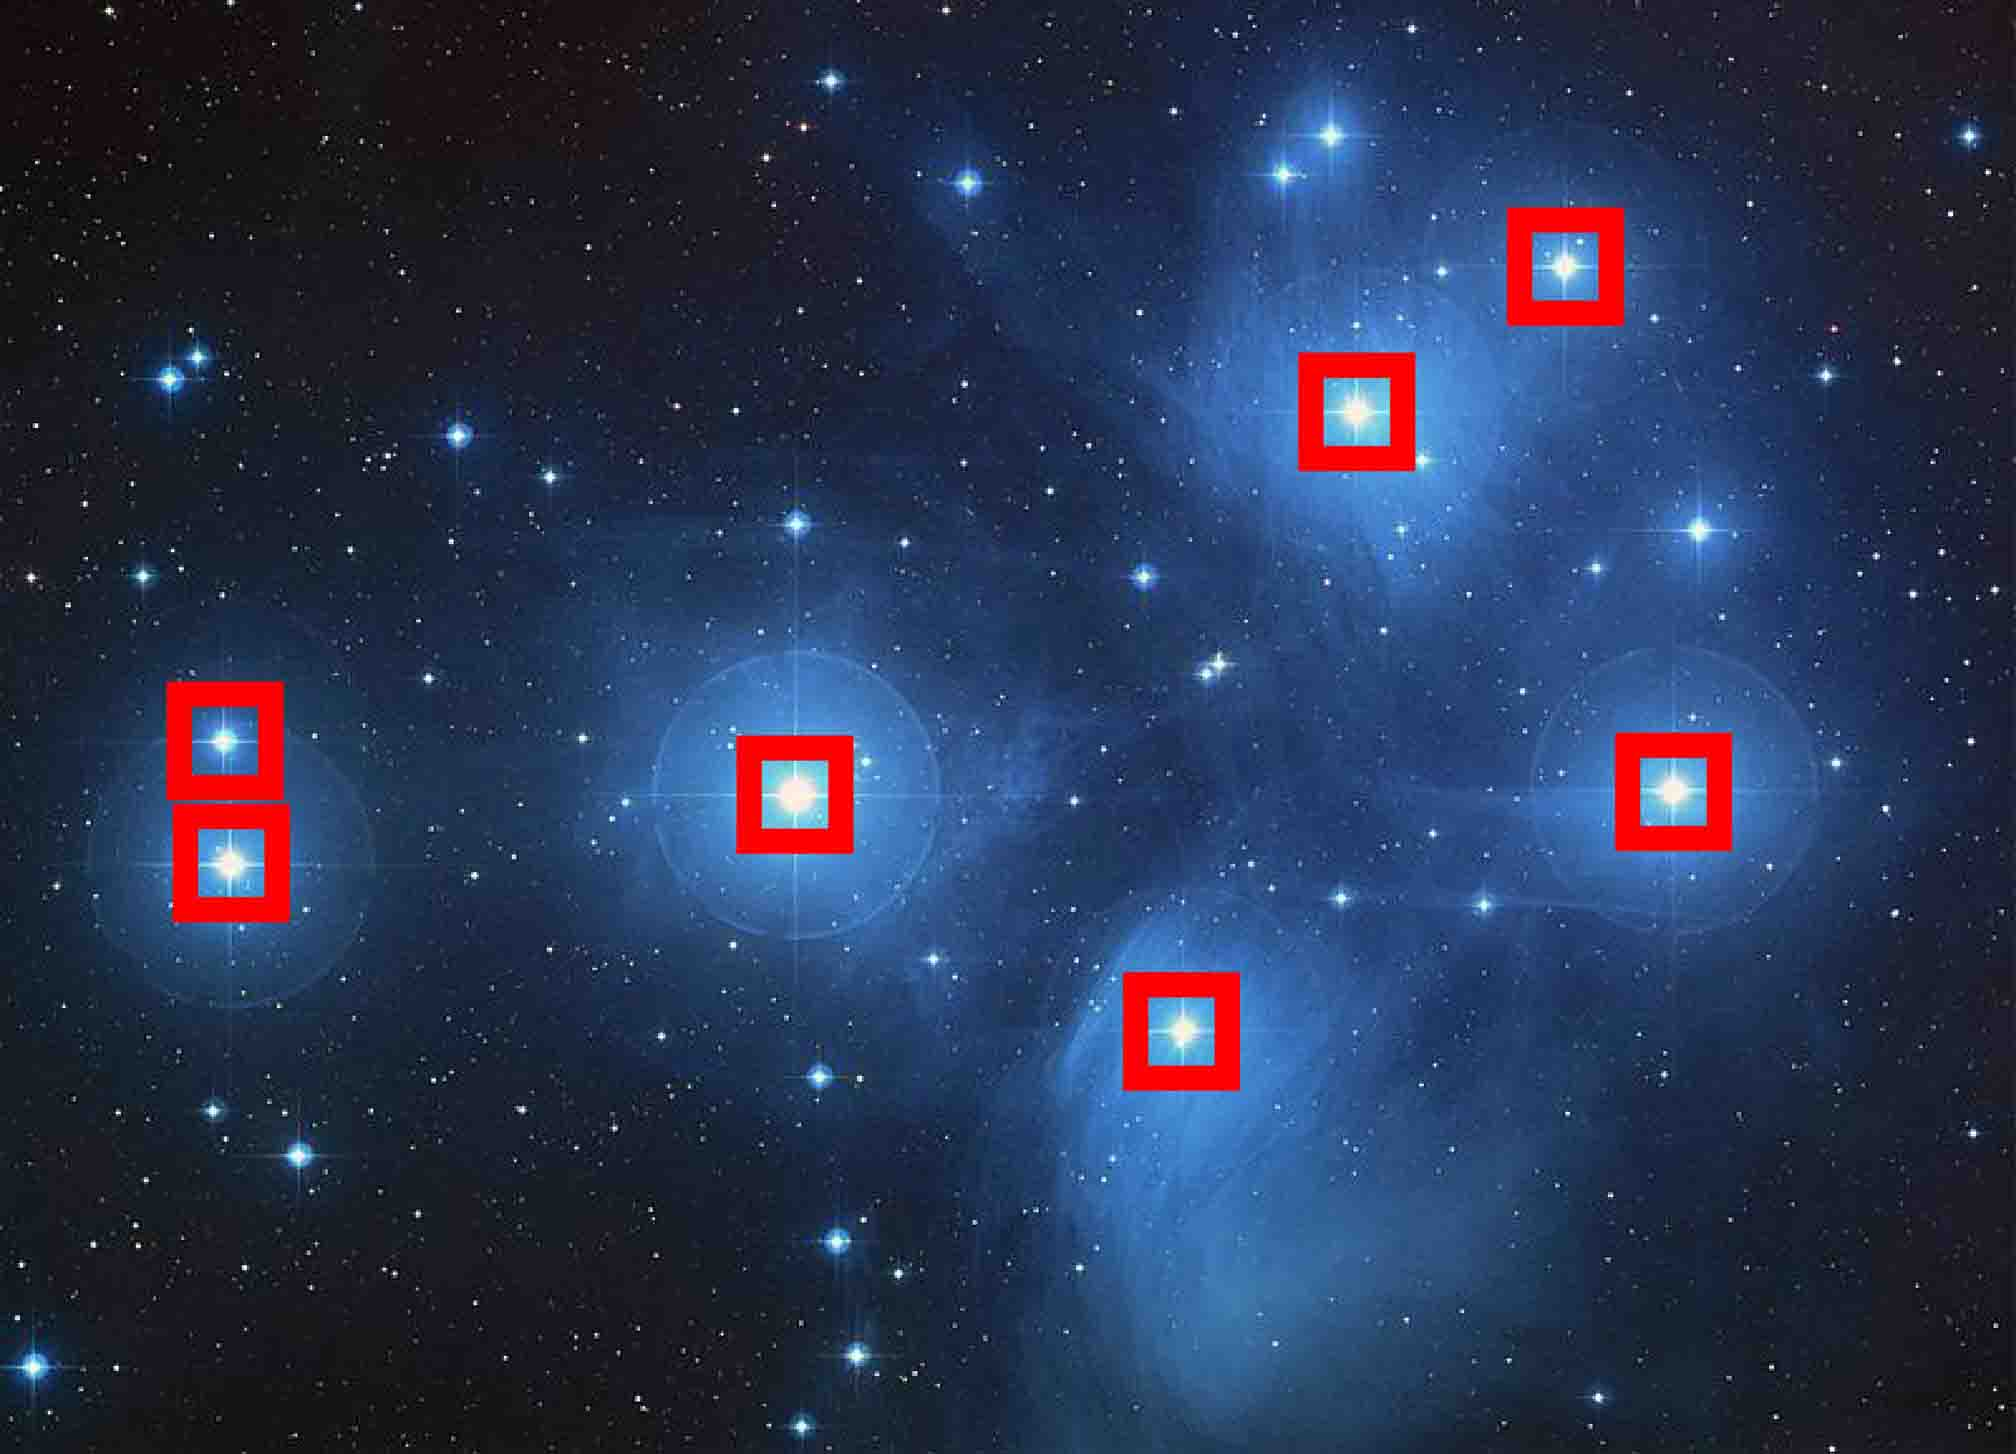 NASA's photo of Pleiades